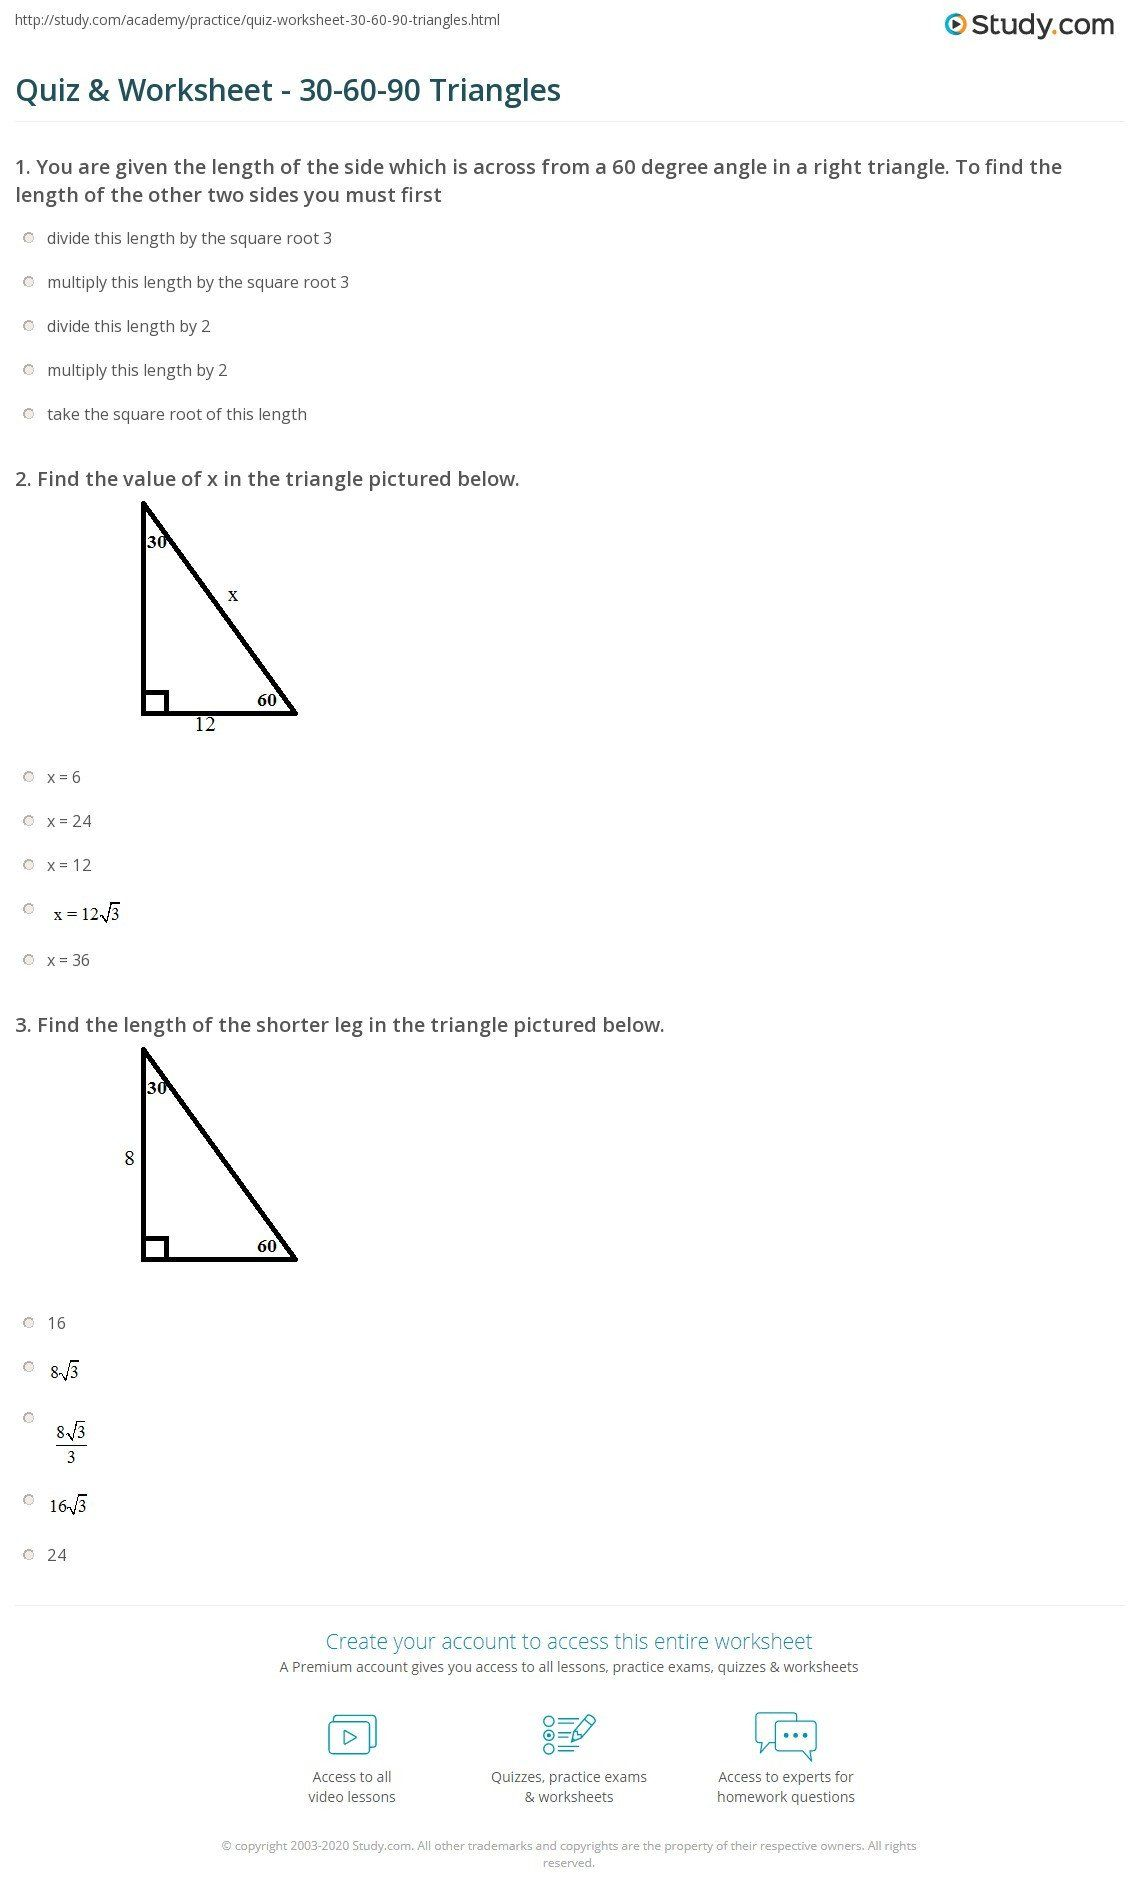 Special Right Triangle Worksheet 5 8 Homework 30 60 90 Triangles Key Triangle Worksheet Practices Worksheets Right Triangle